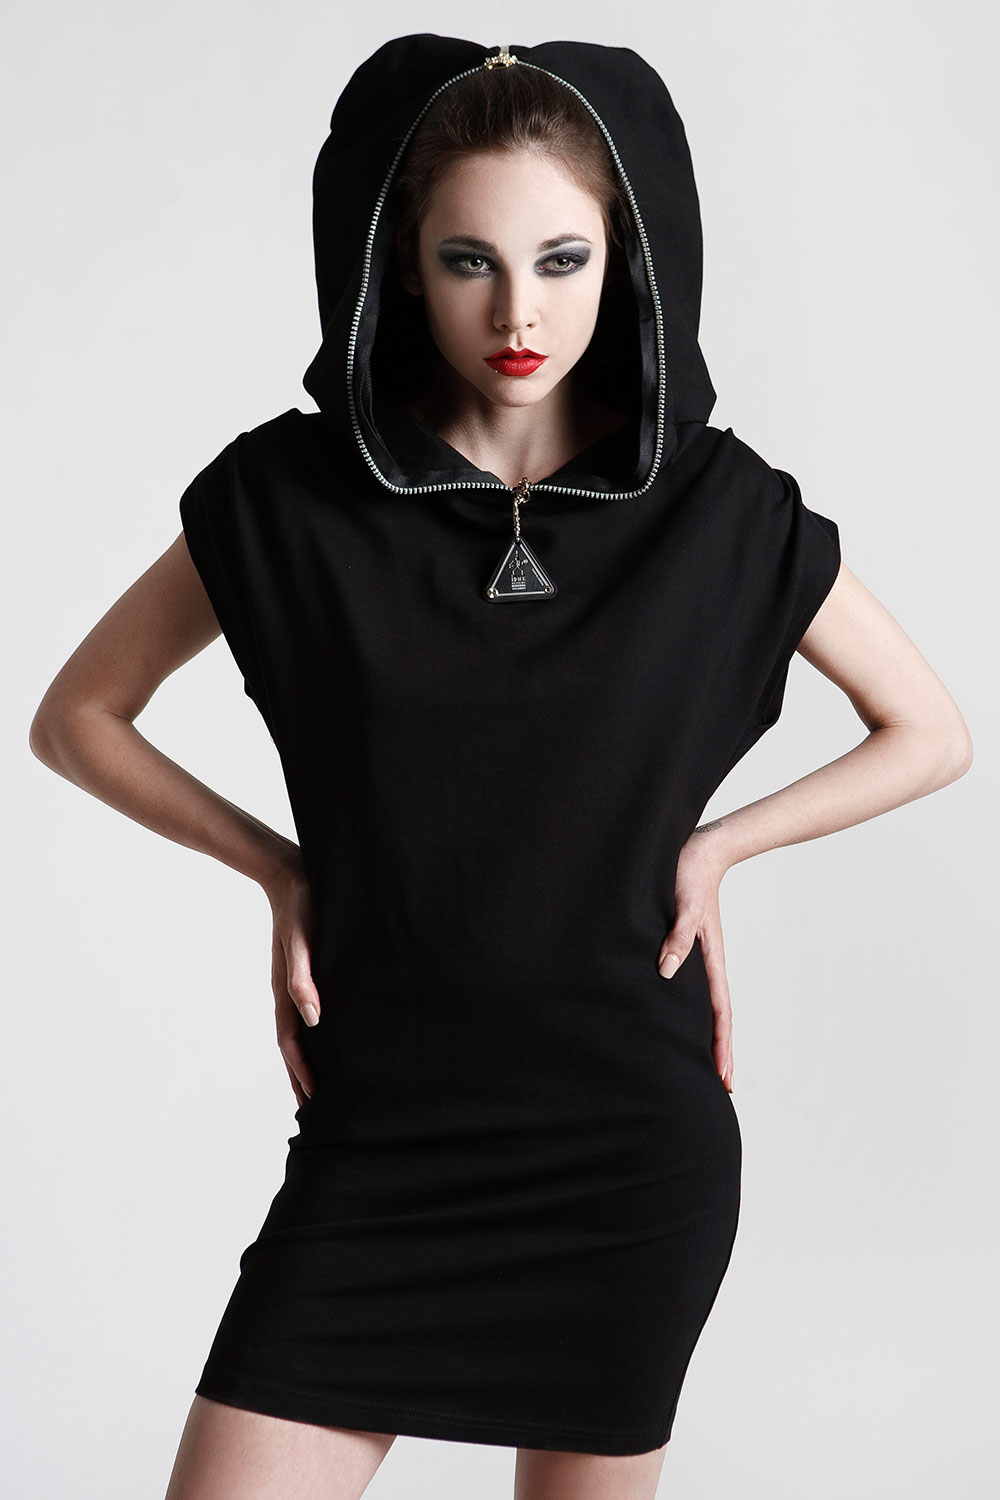 Short Black Dress With Hood In 4 Way Stretch Lycra Spandex -6446